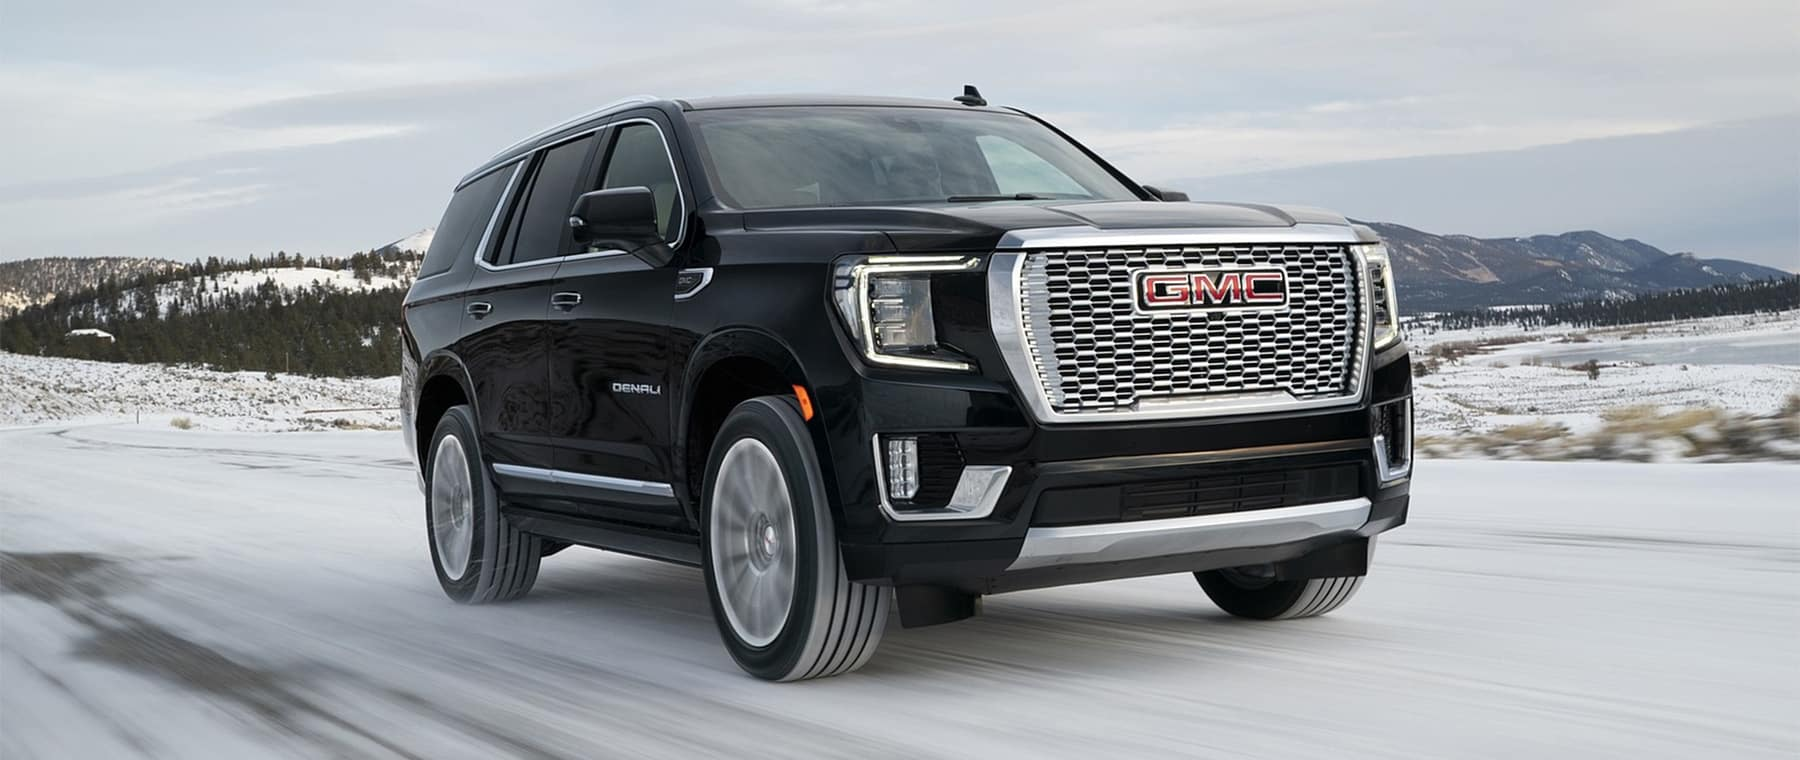 2021 GMC Yukon black driving on snowy road